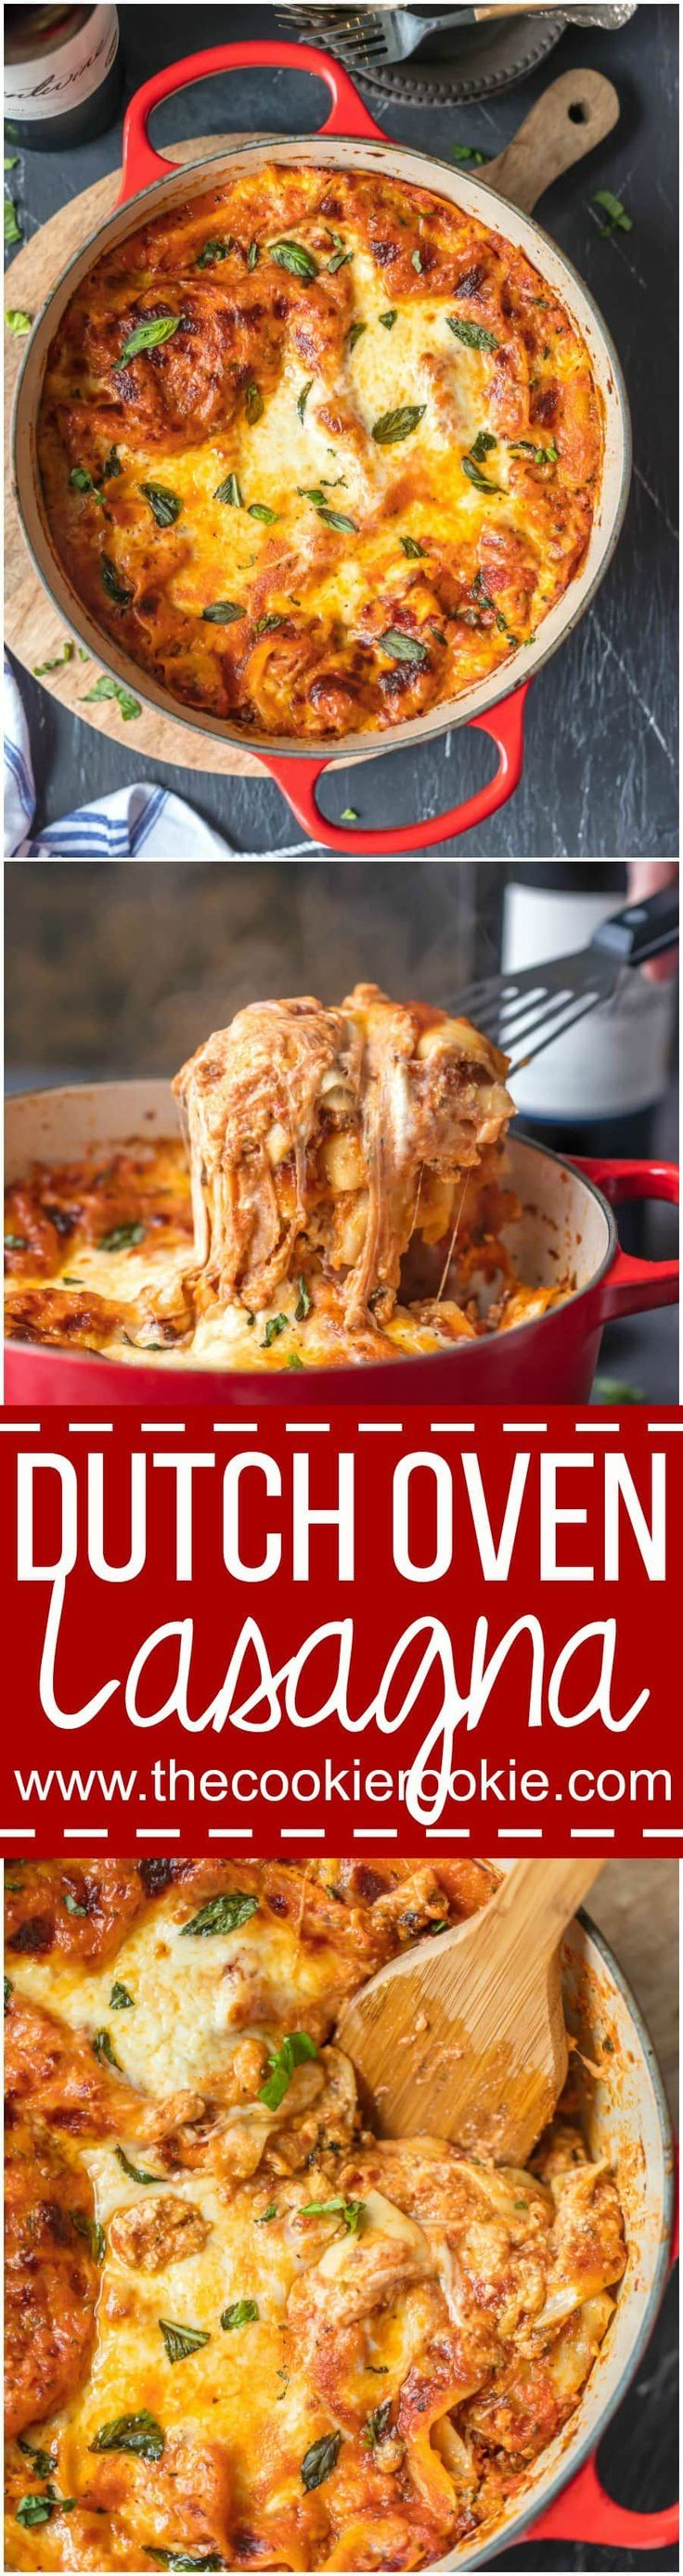 This DUTCH OVEN LASAGNA will blow your mind! You'll never make traditional lasagna again after making this easy stove-top version. We are addicted to this recipe! via @beckygallhardin (Whats Your Favorite Drink)